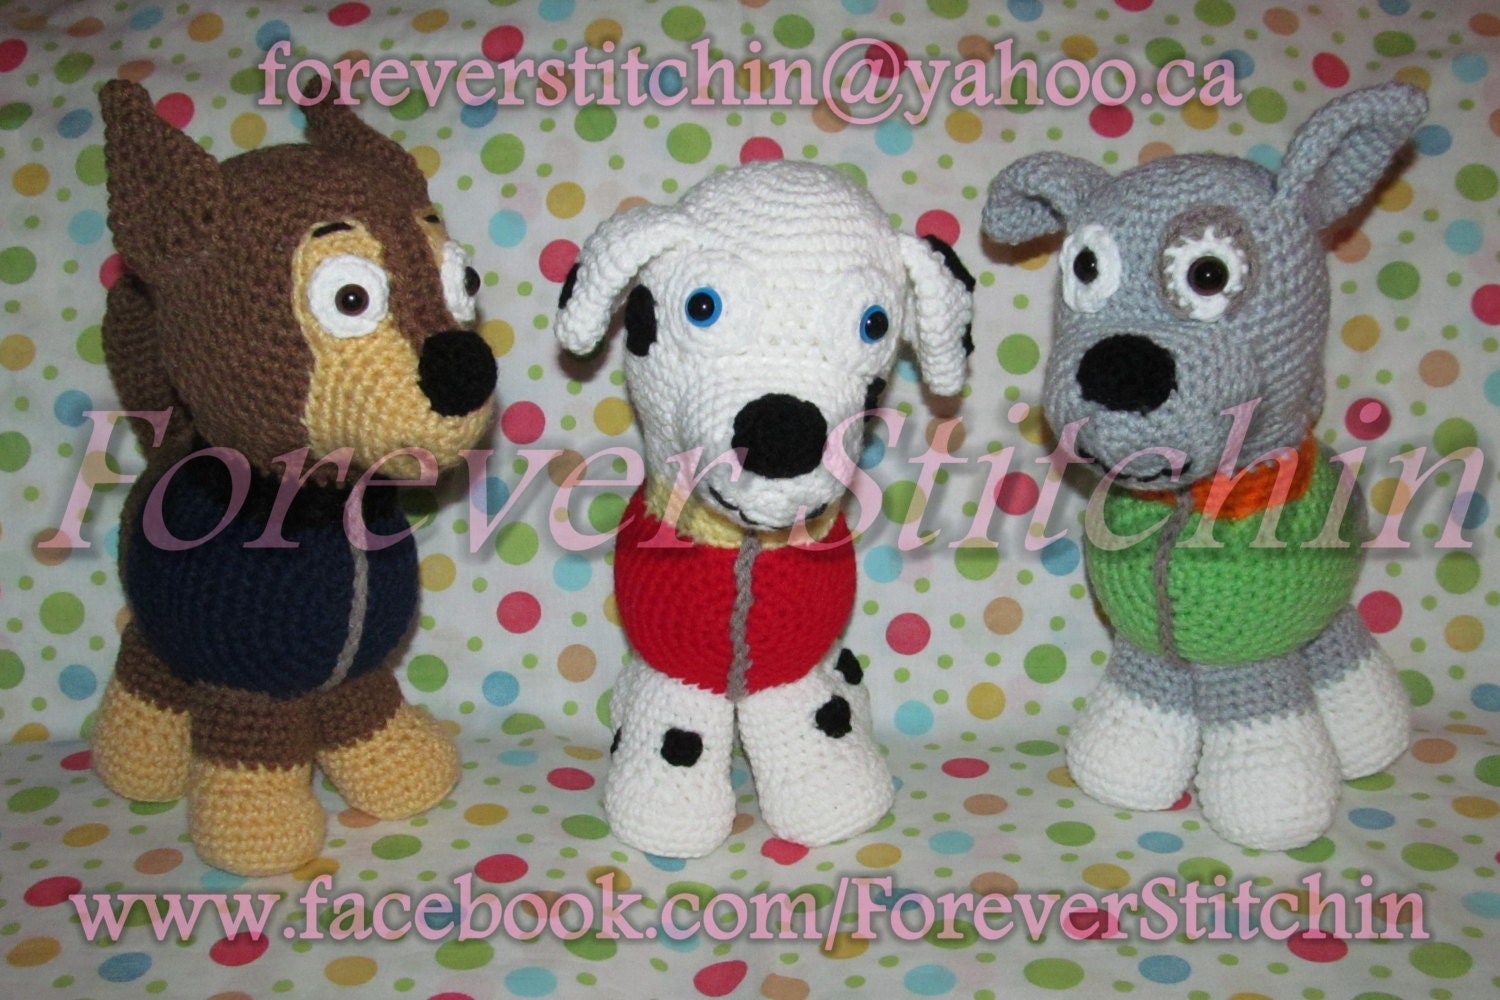 Crochet Patterns Paw Patrol : Request a custom order and have something made just for you.